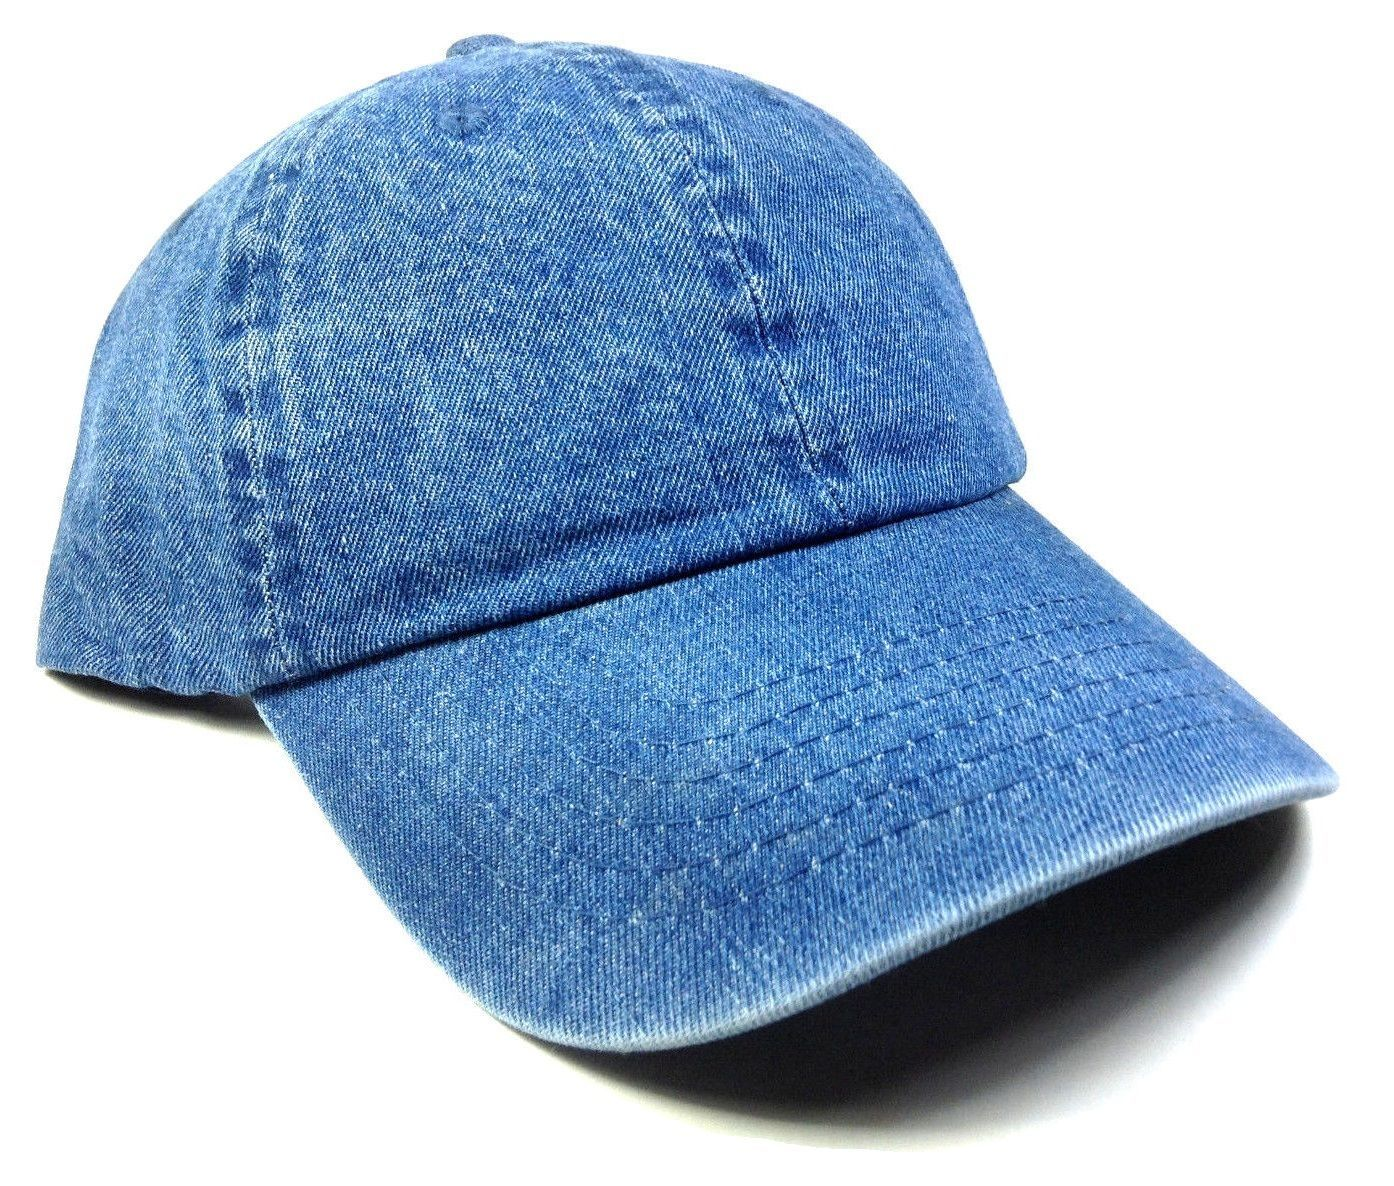 fb6cd04ee66 Slouch Solid Blue Jean Plain Denim Dad Hat Cap Curved Bill Adjustable  Buckle Nwt